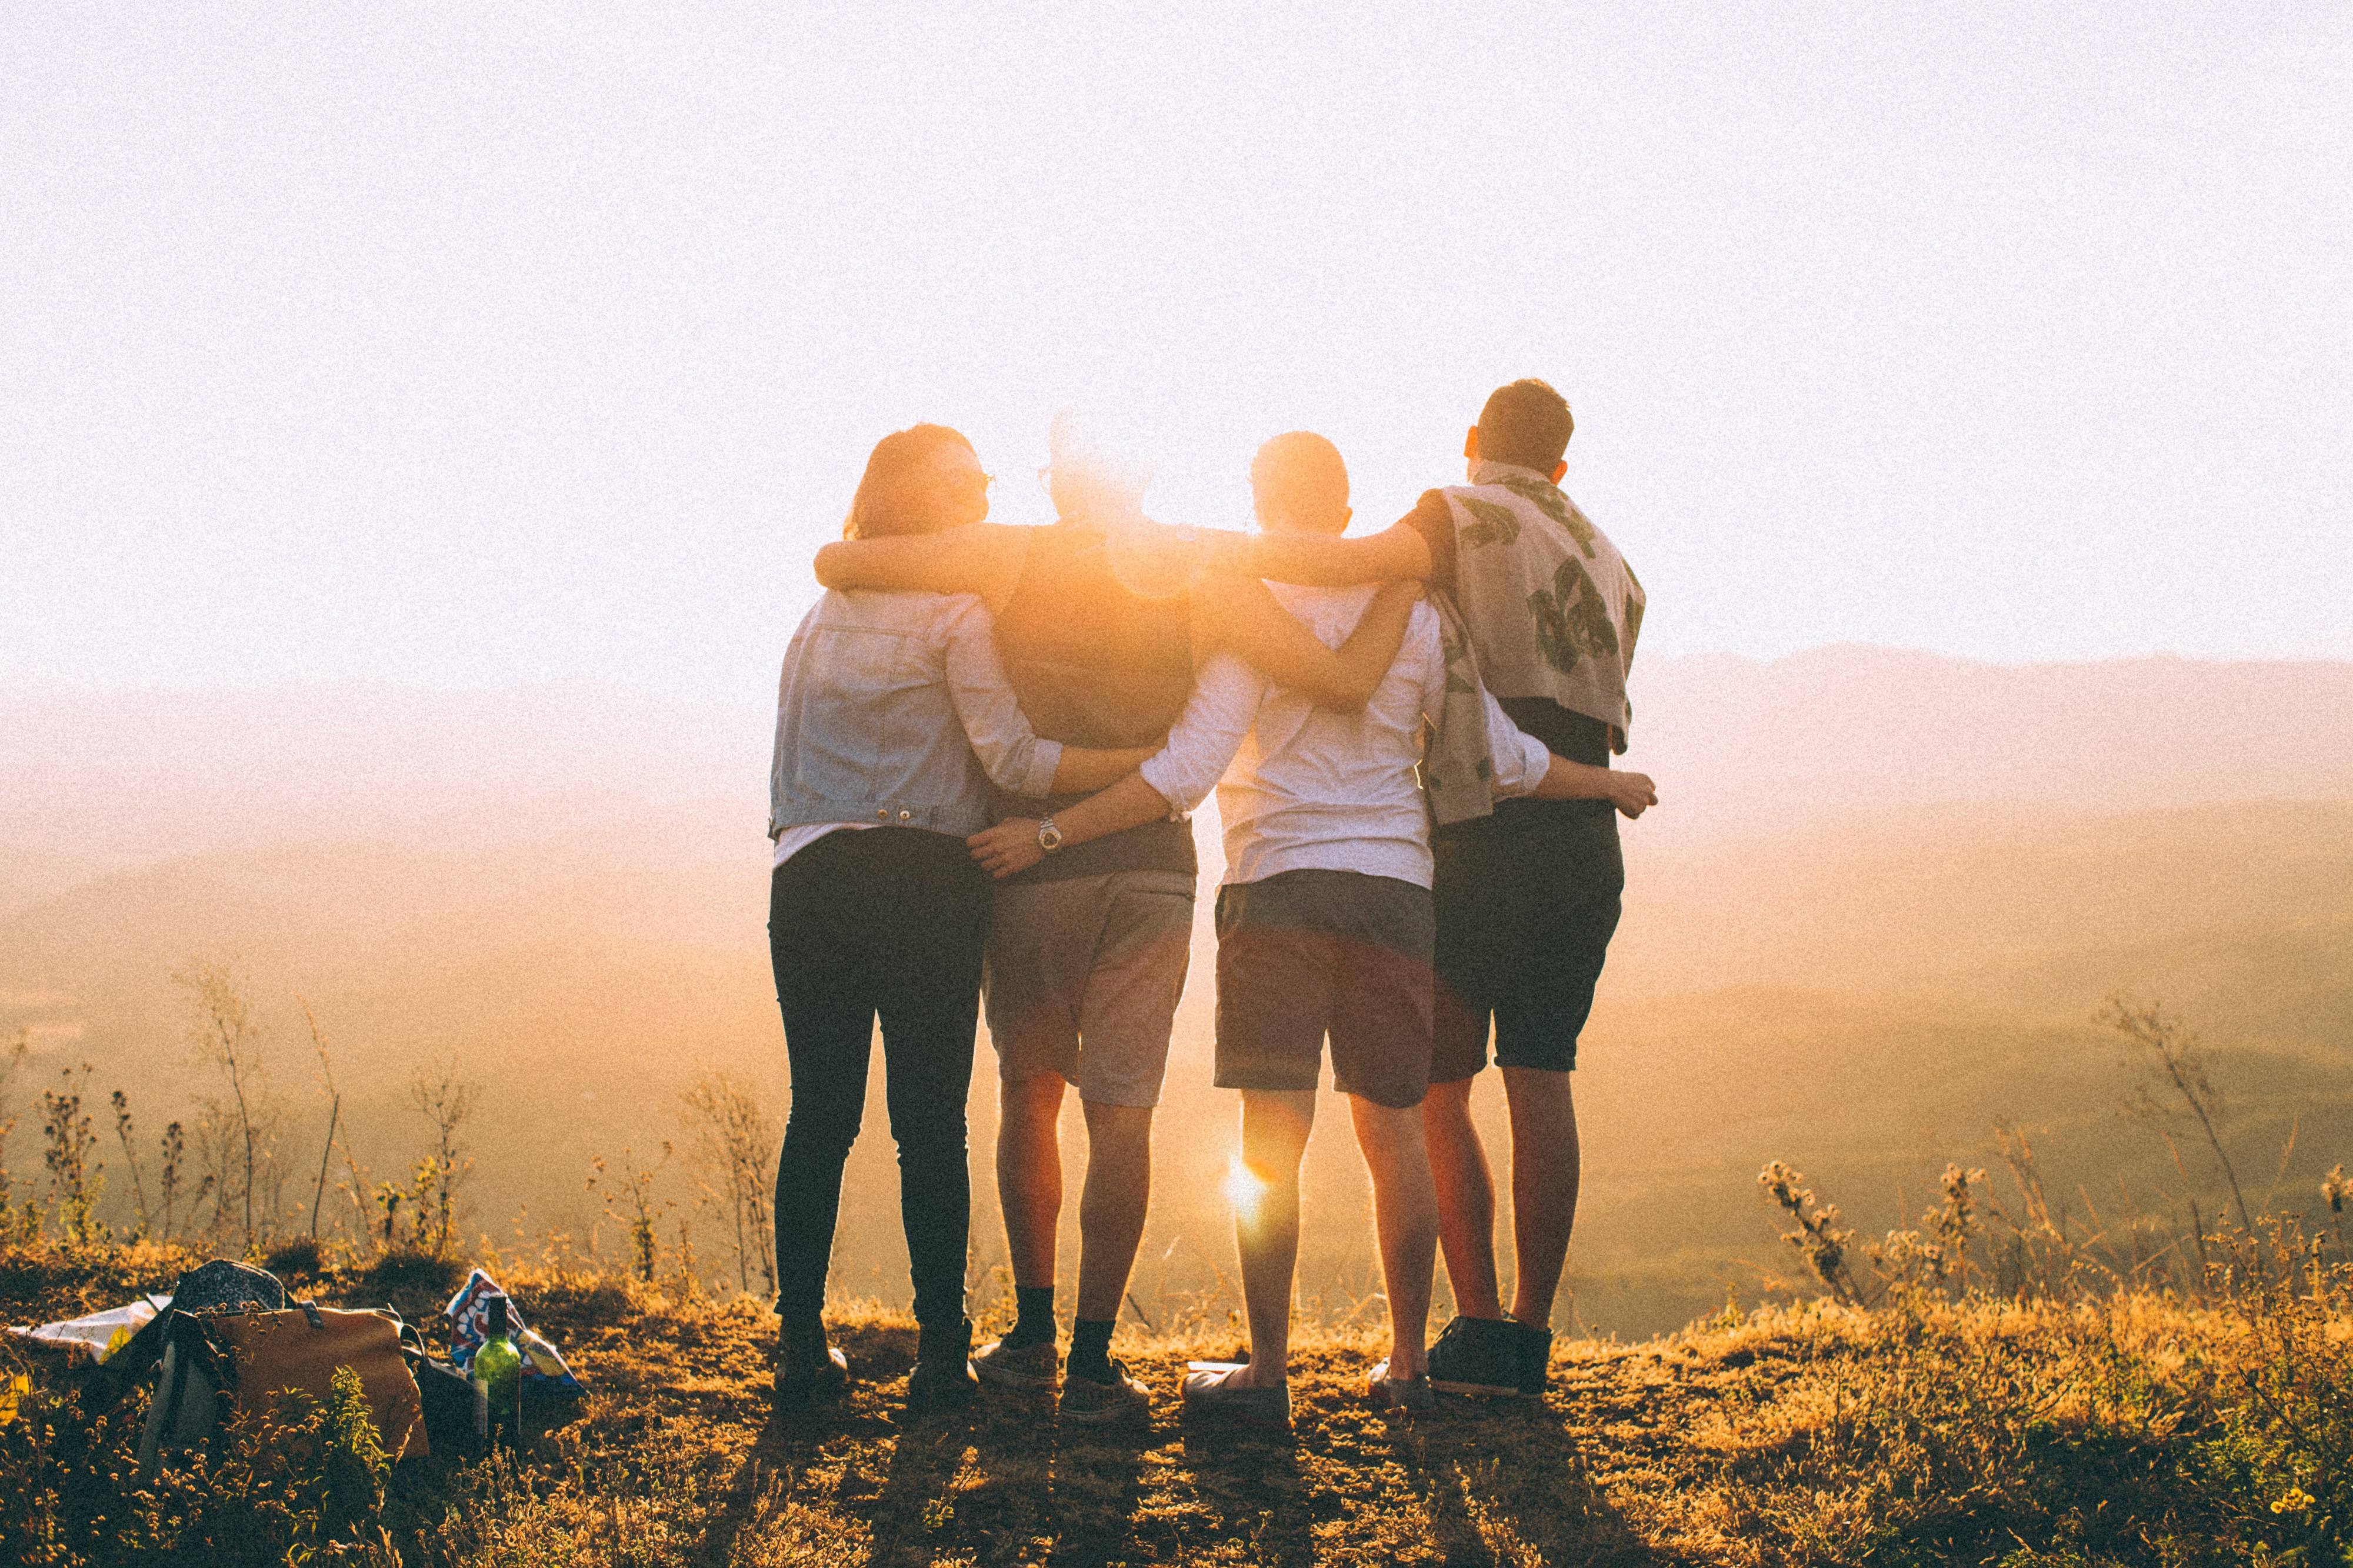 Four friends embrace on a mountaintop as the sun rises